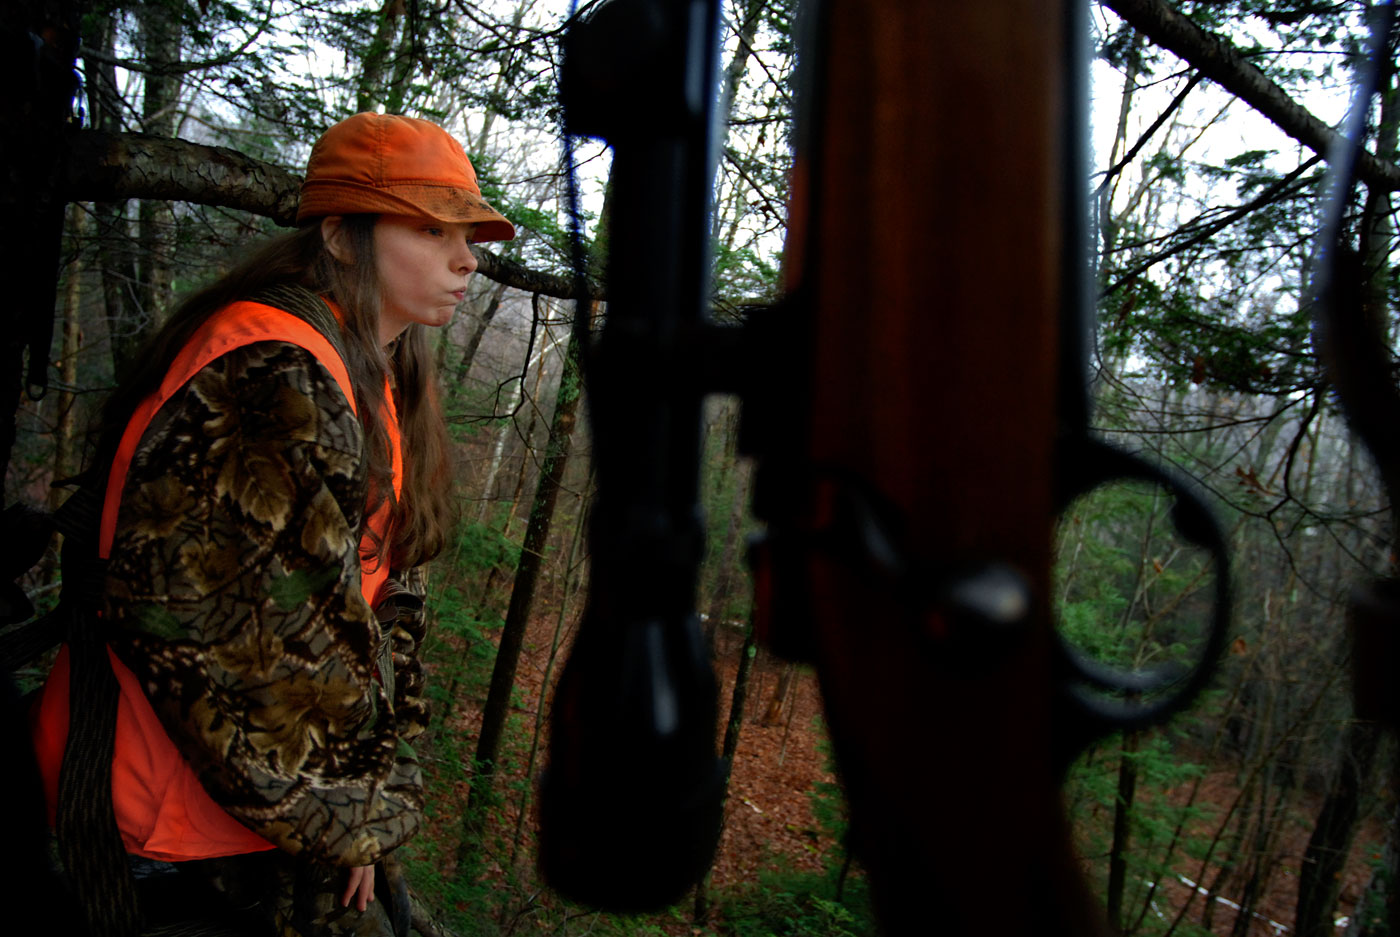 Beth Irwin waits patiently in a tree stand while out deer hunting with her father, Tim. Beth, 13, didn't shoot any deer but did see a few in the distance. For hunters, learning to be patient is an integral aspect of hunting; and just seeing deer and various aspects of nature is one of the many enjoyable parts of hunting, all of which requires a hightened level of patience.